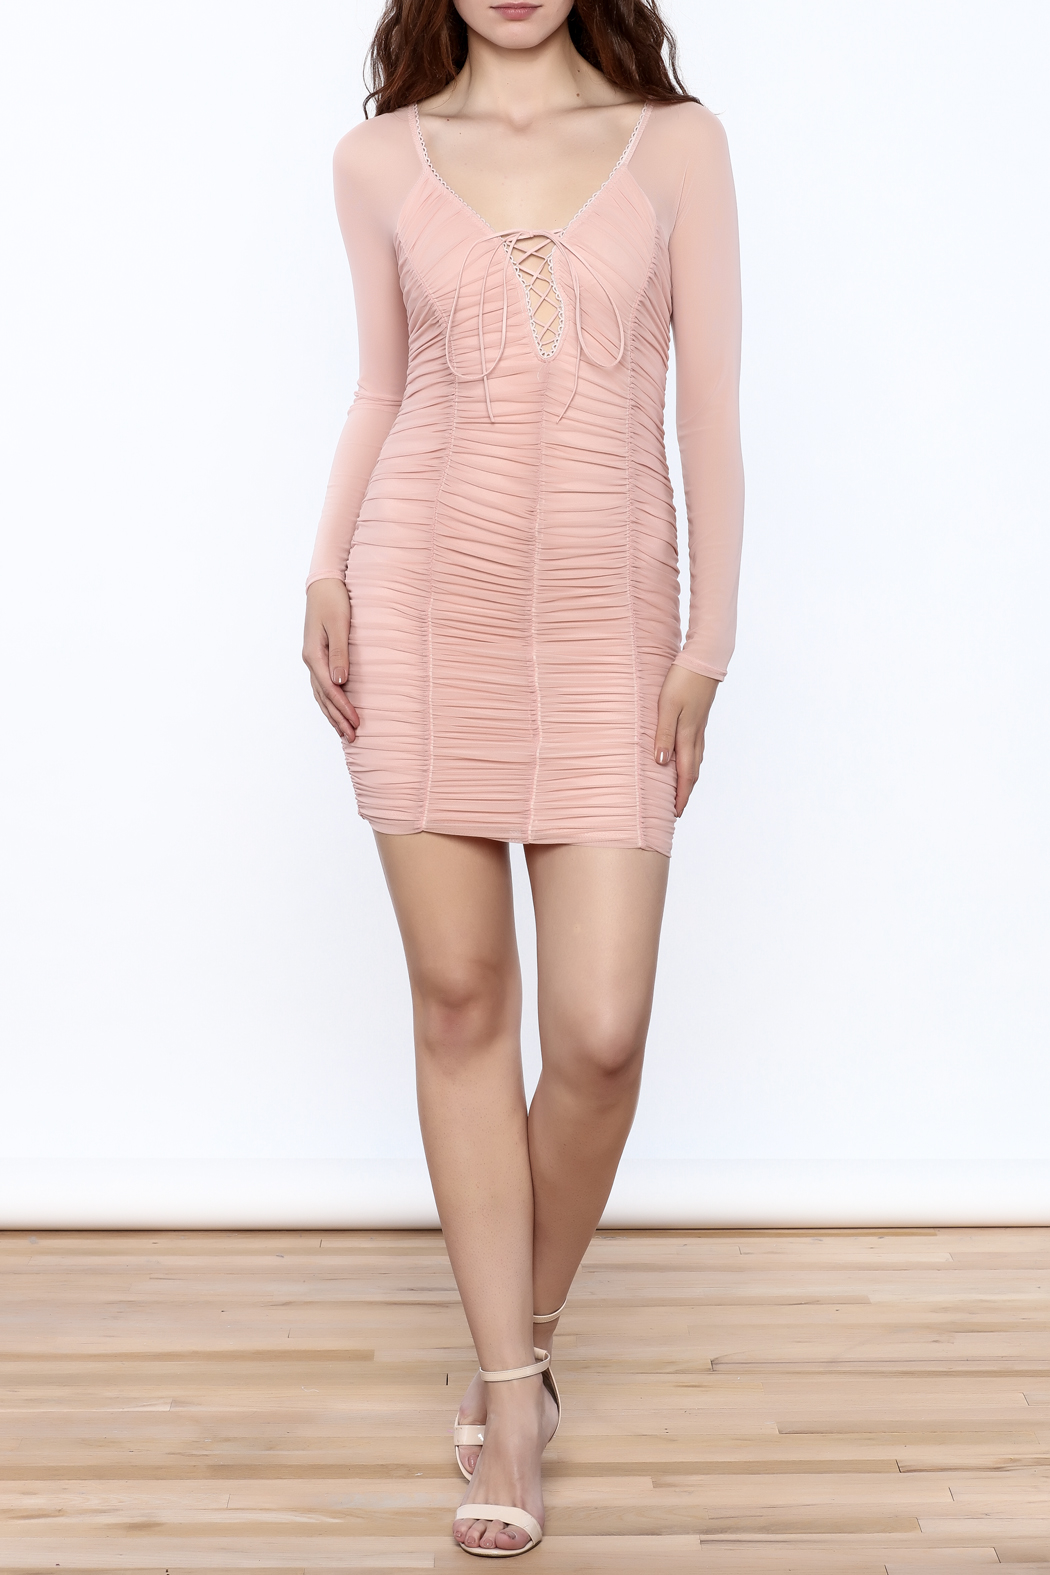 K too Pink Ruched Dress - Front Full Image